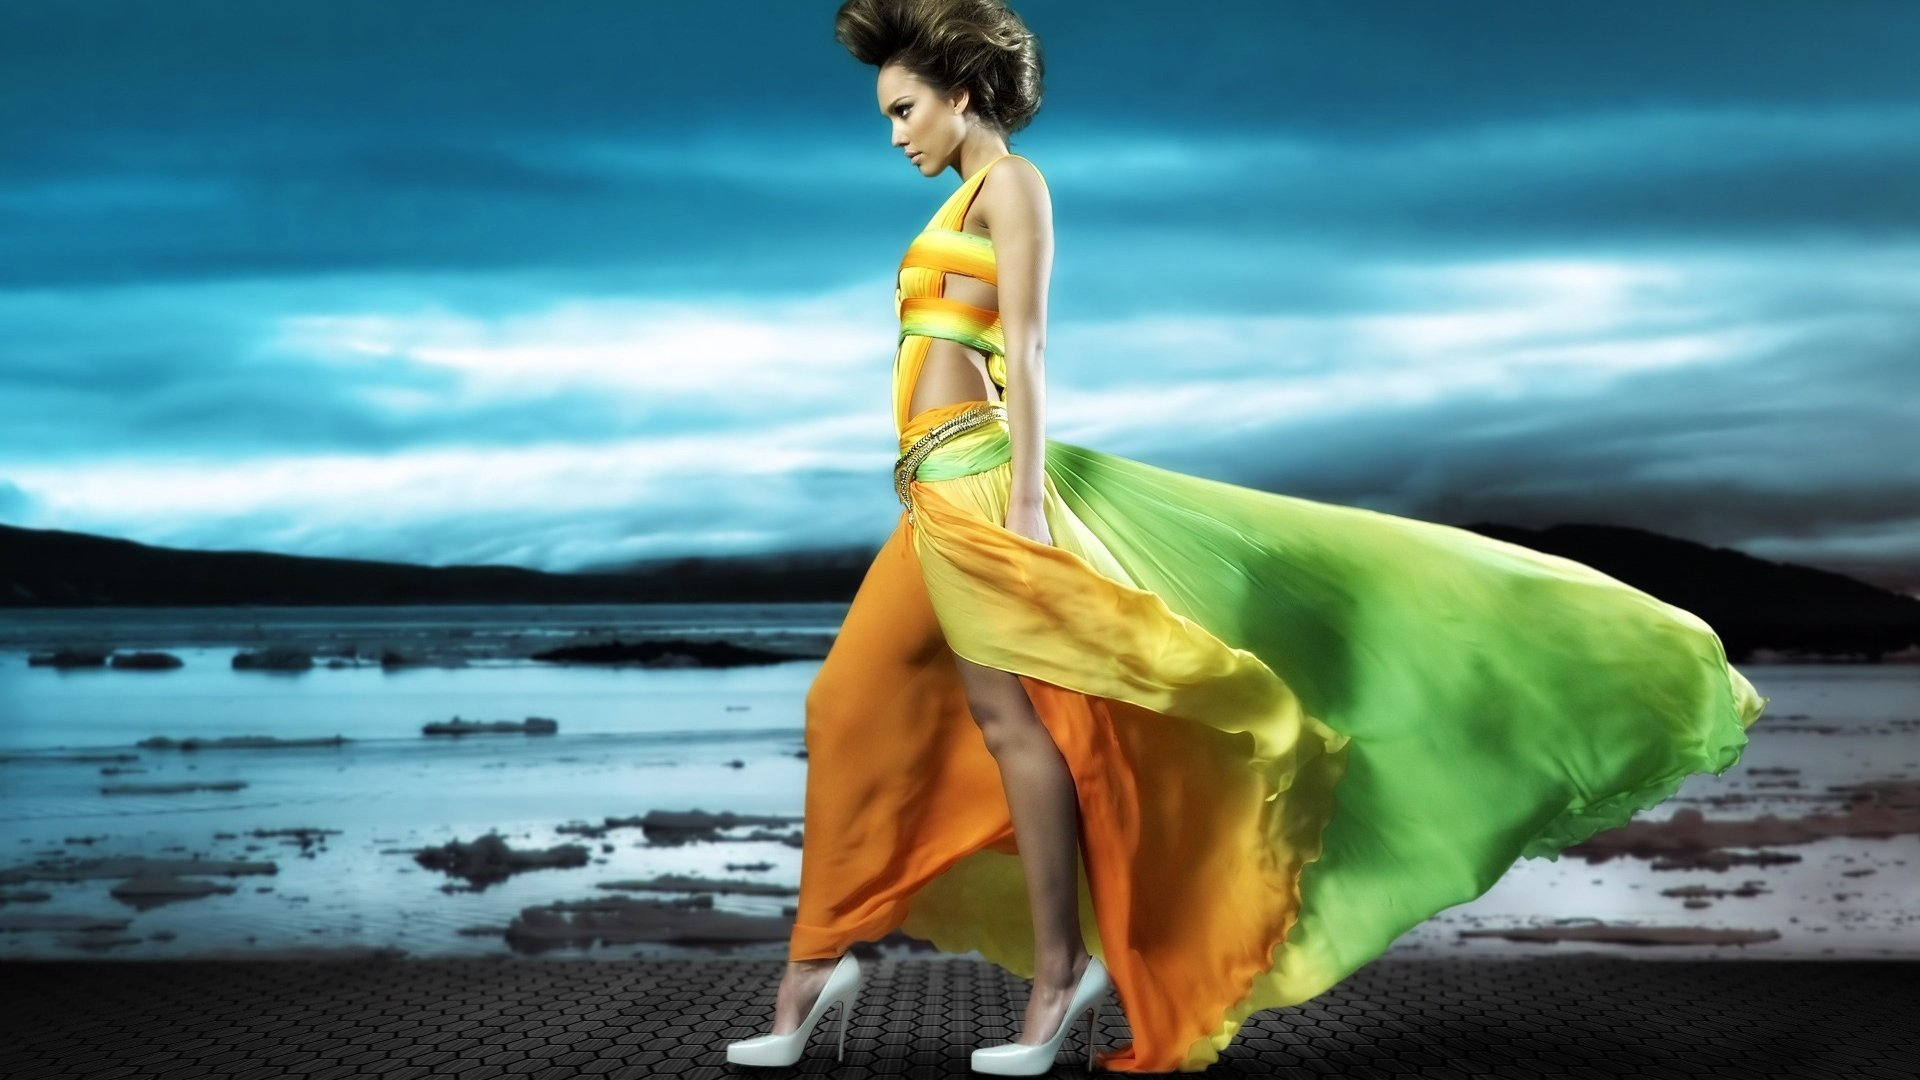 Colourful Girl Wallpapers